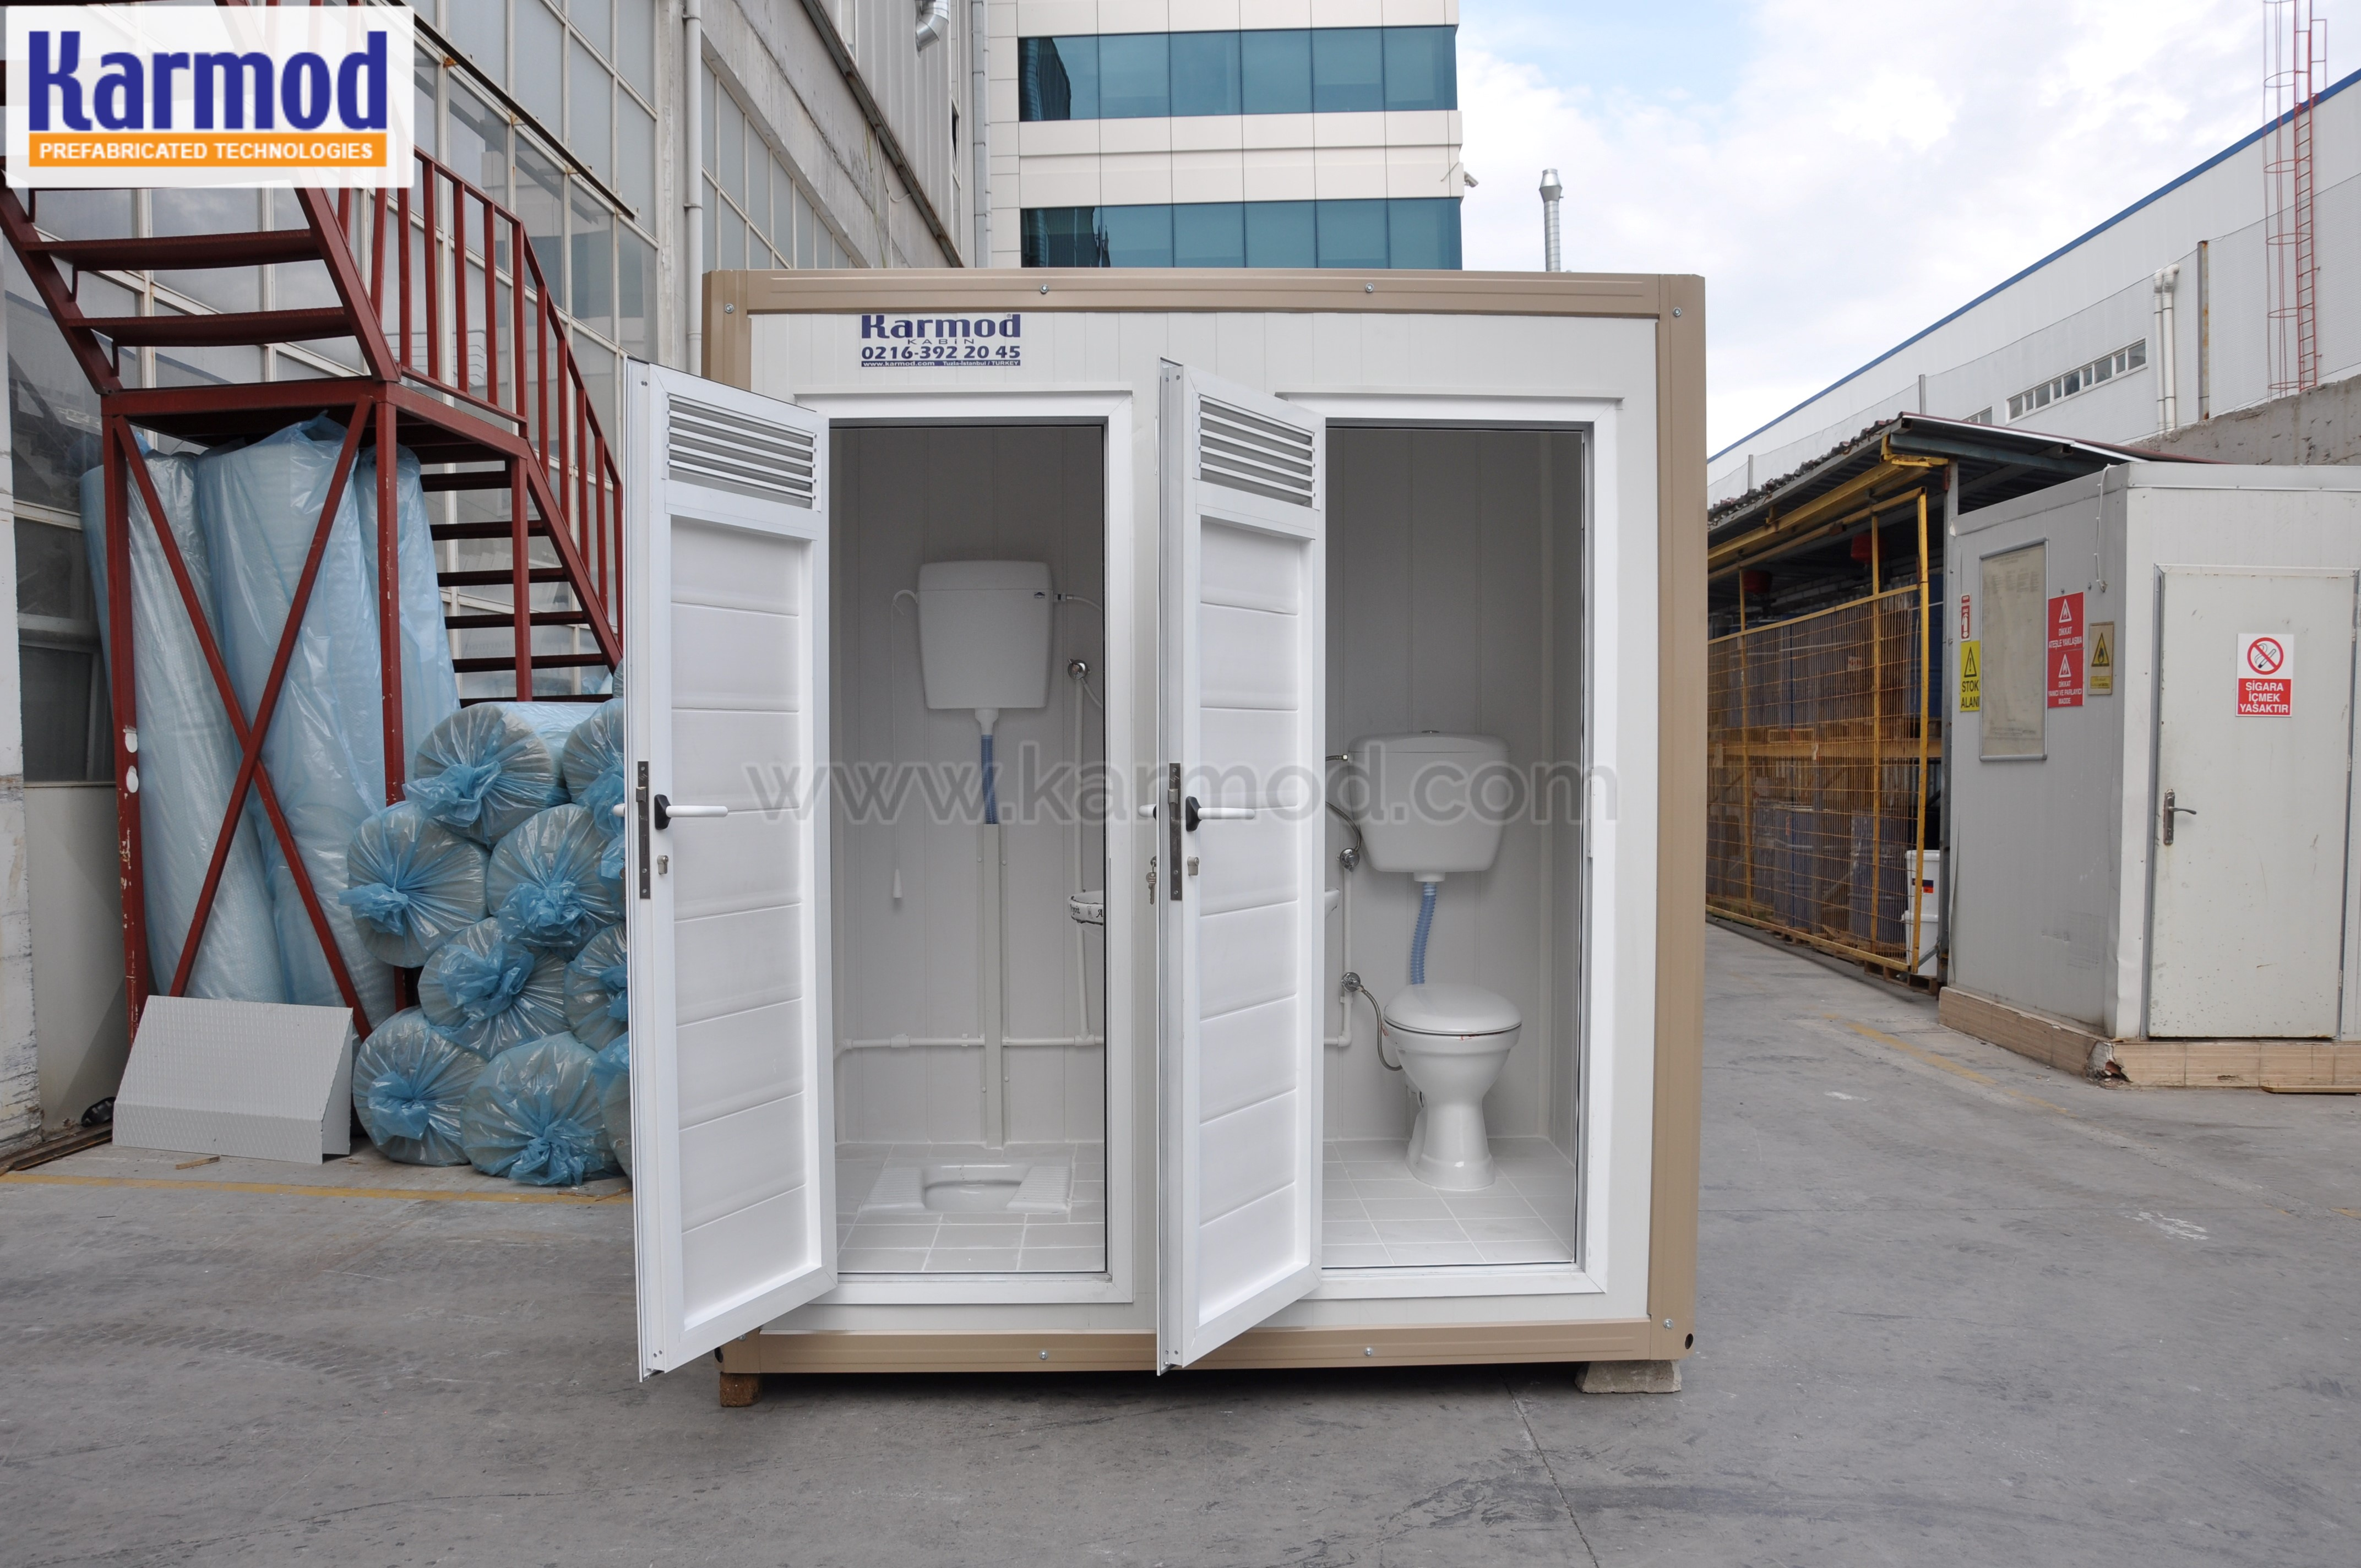 restrooms wc mobile